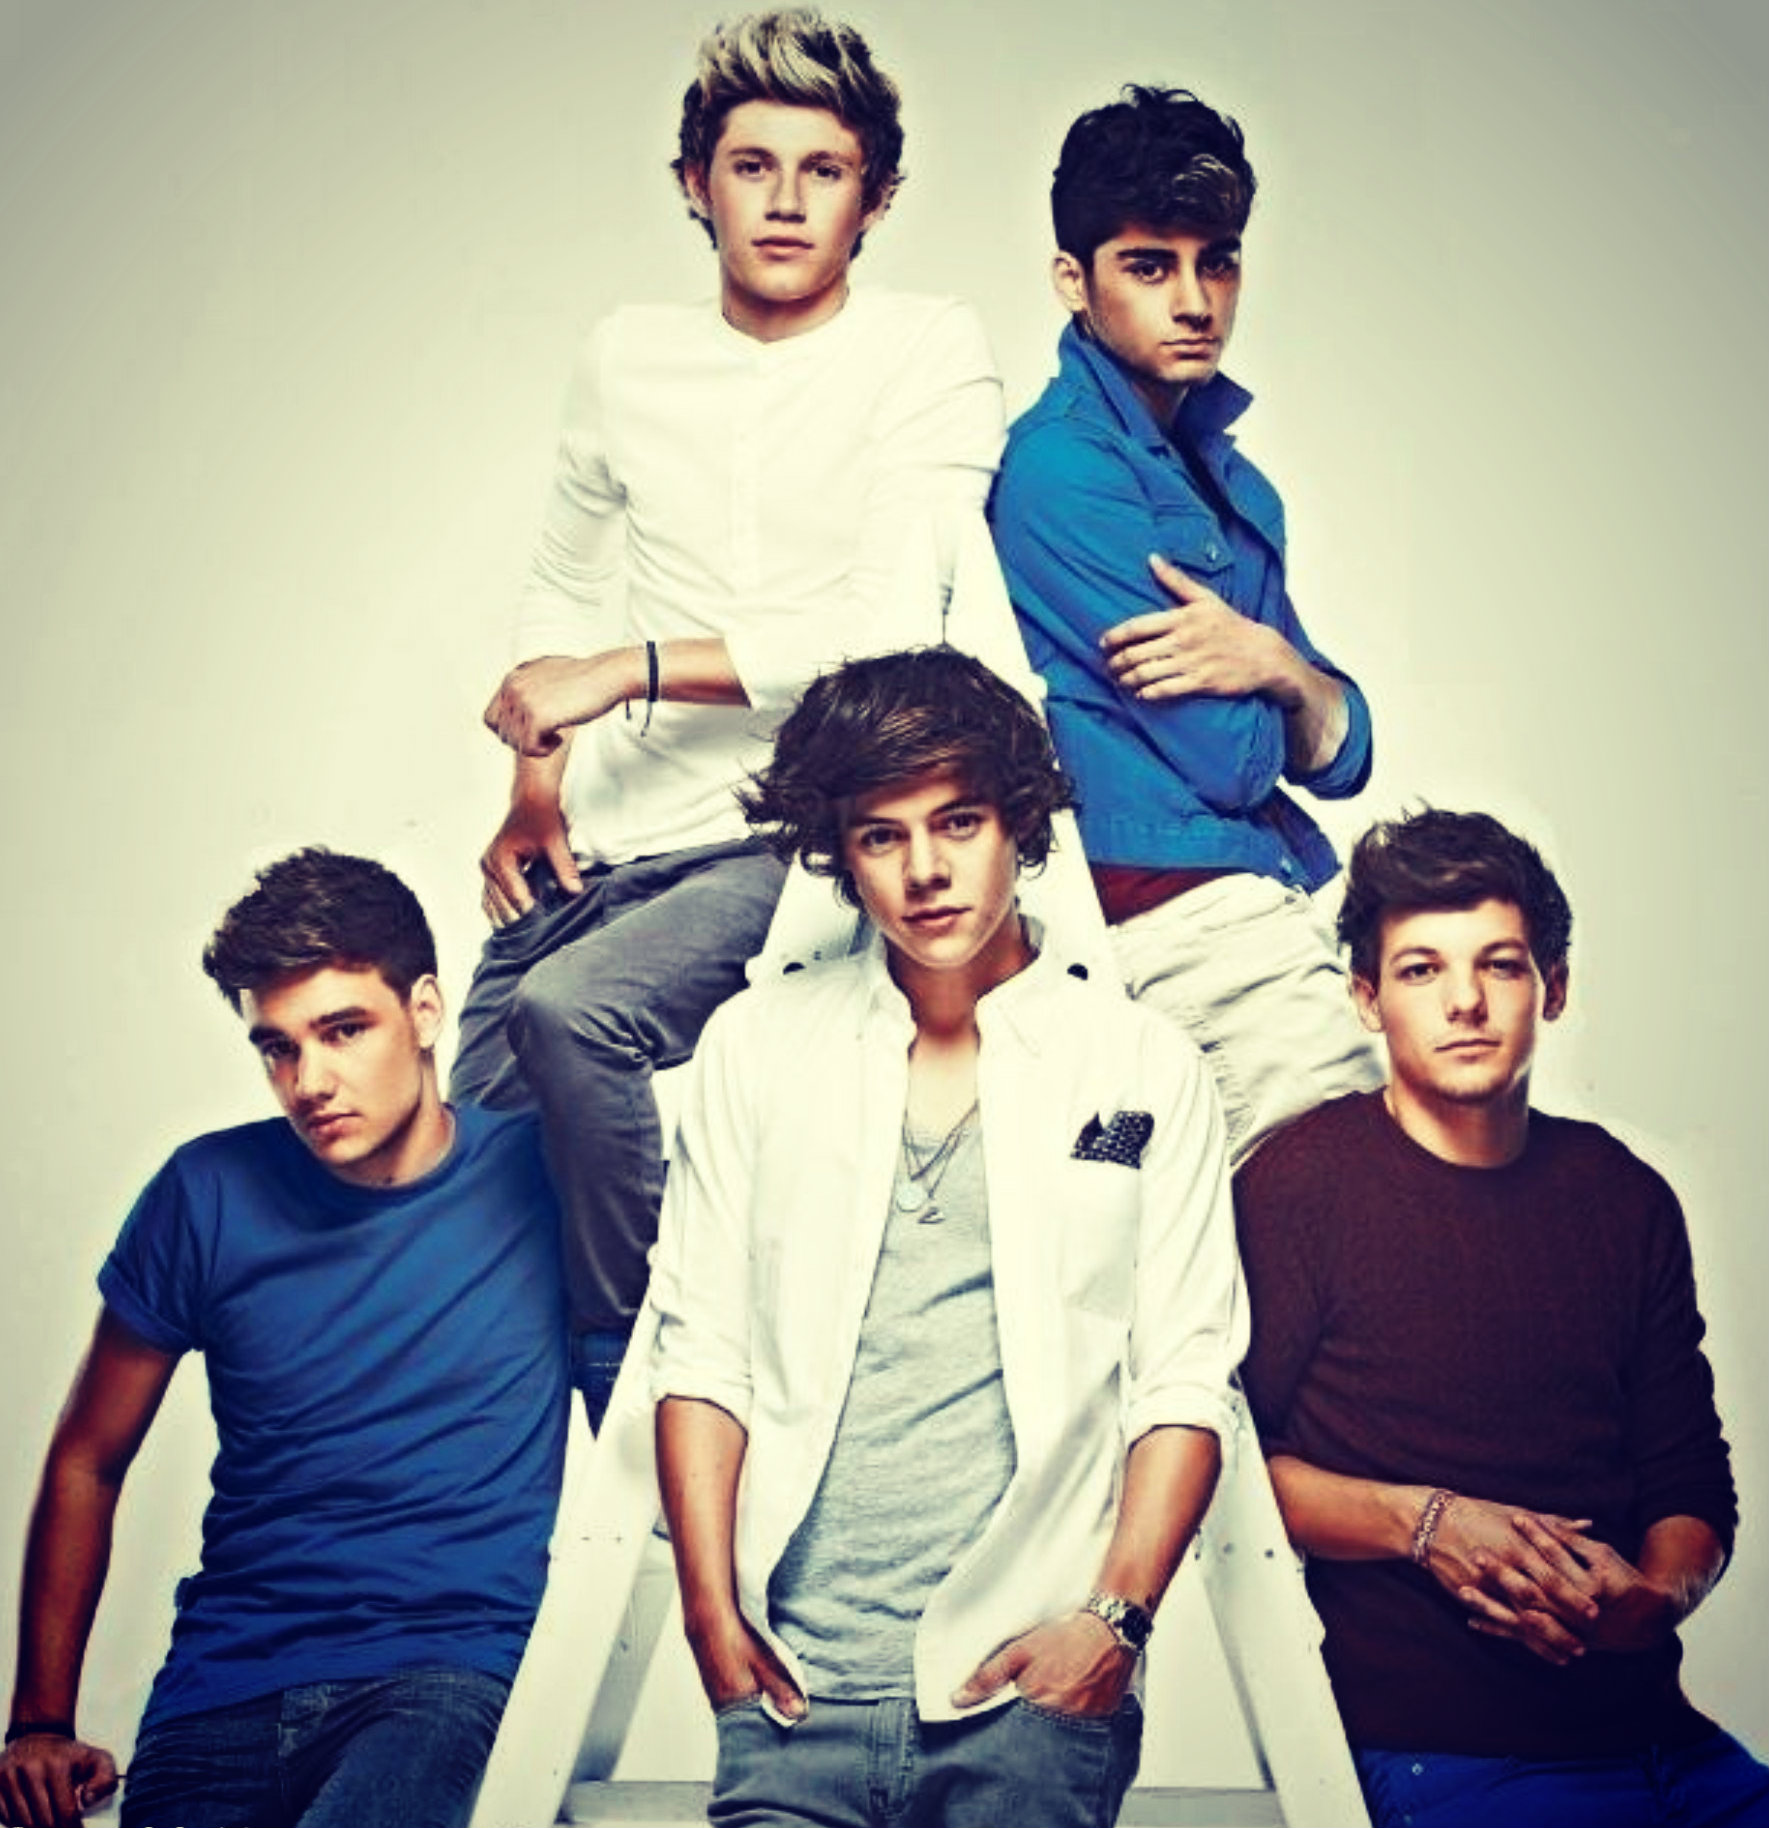 1000+ images about One direction wallpaper on Pinterest | My boys